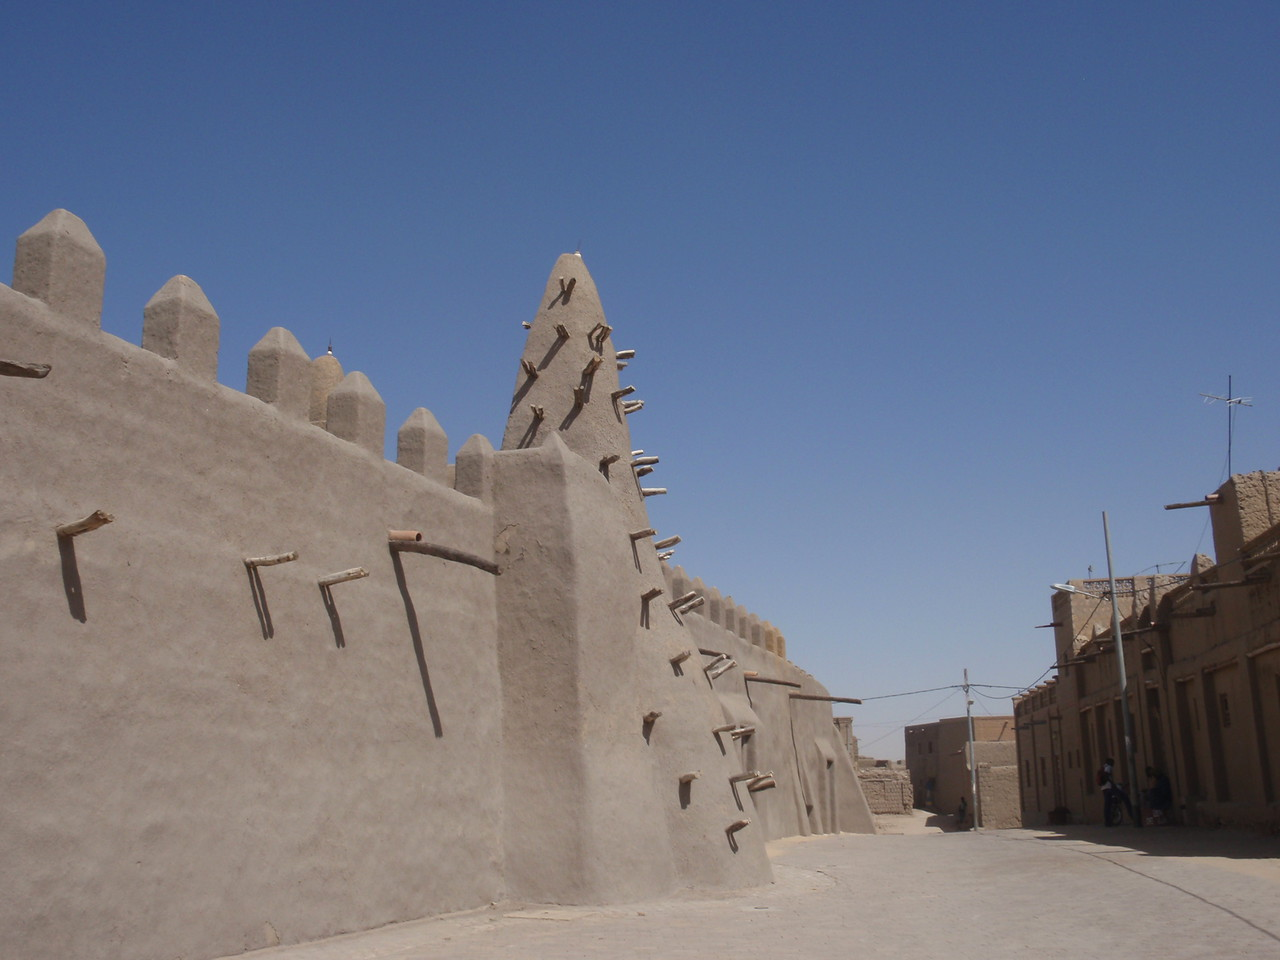 065_Timbuktu  Dyingerey Ber Mosque  Sudanese Style Architecture